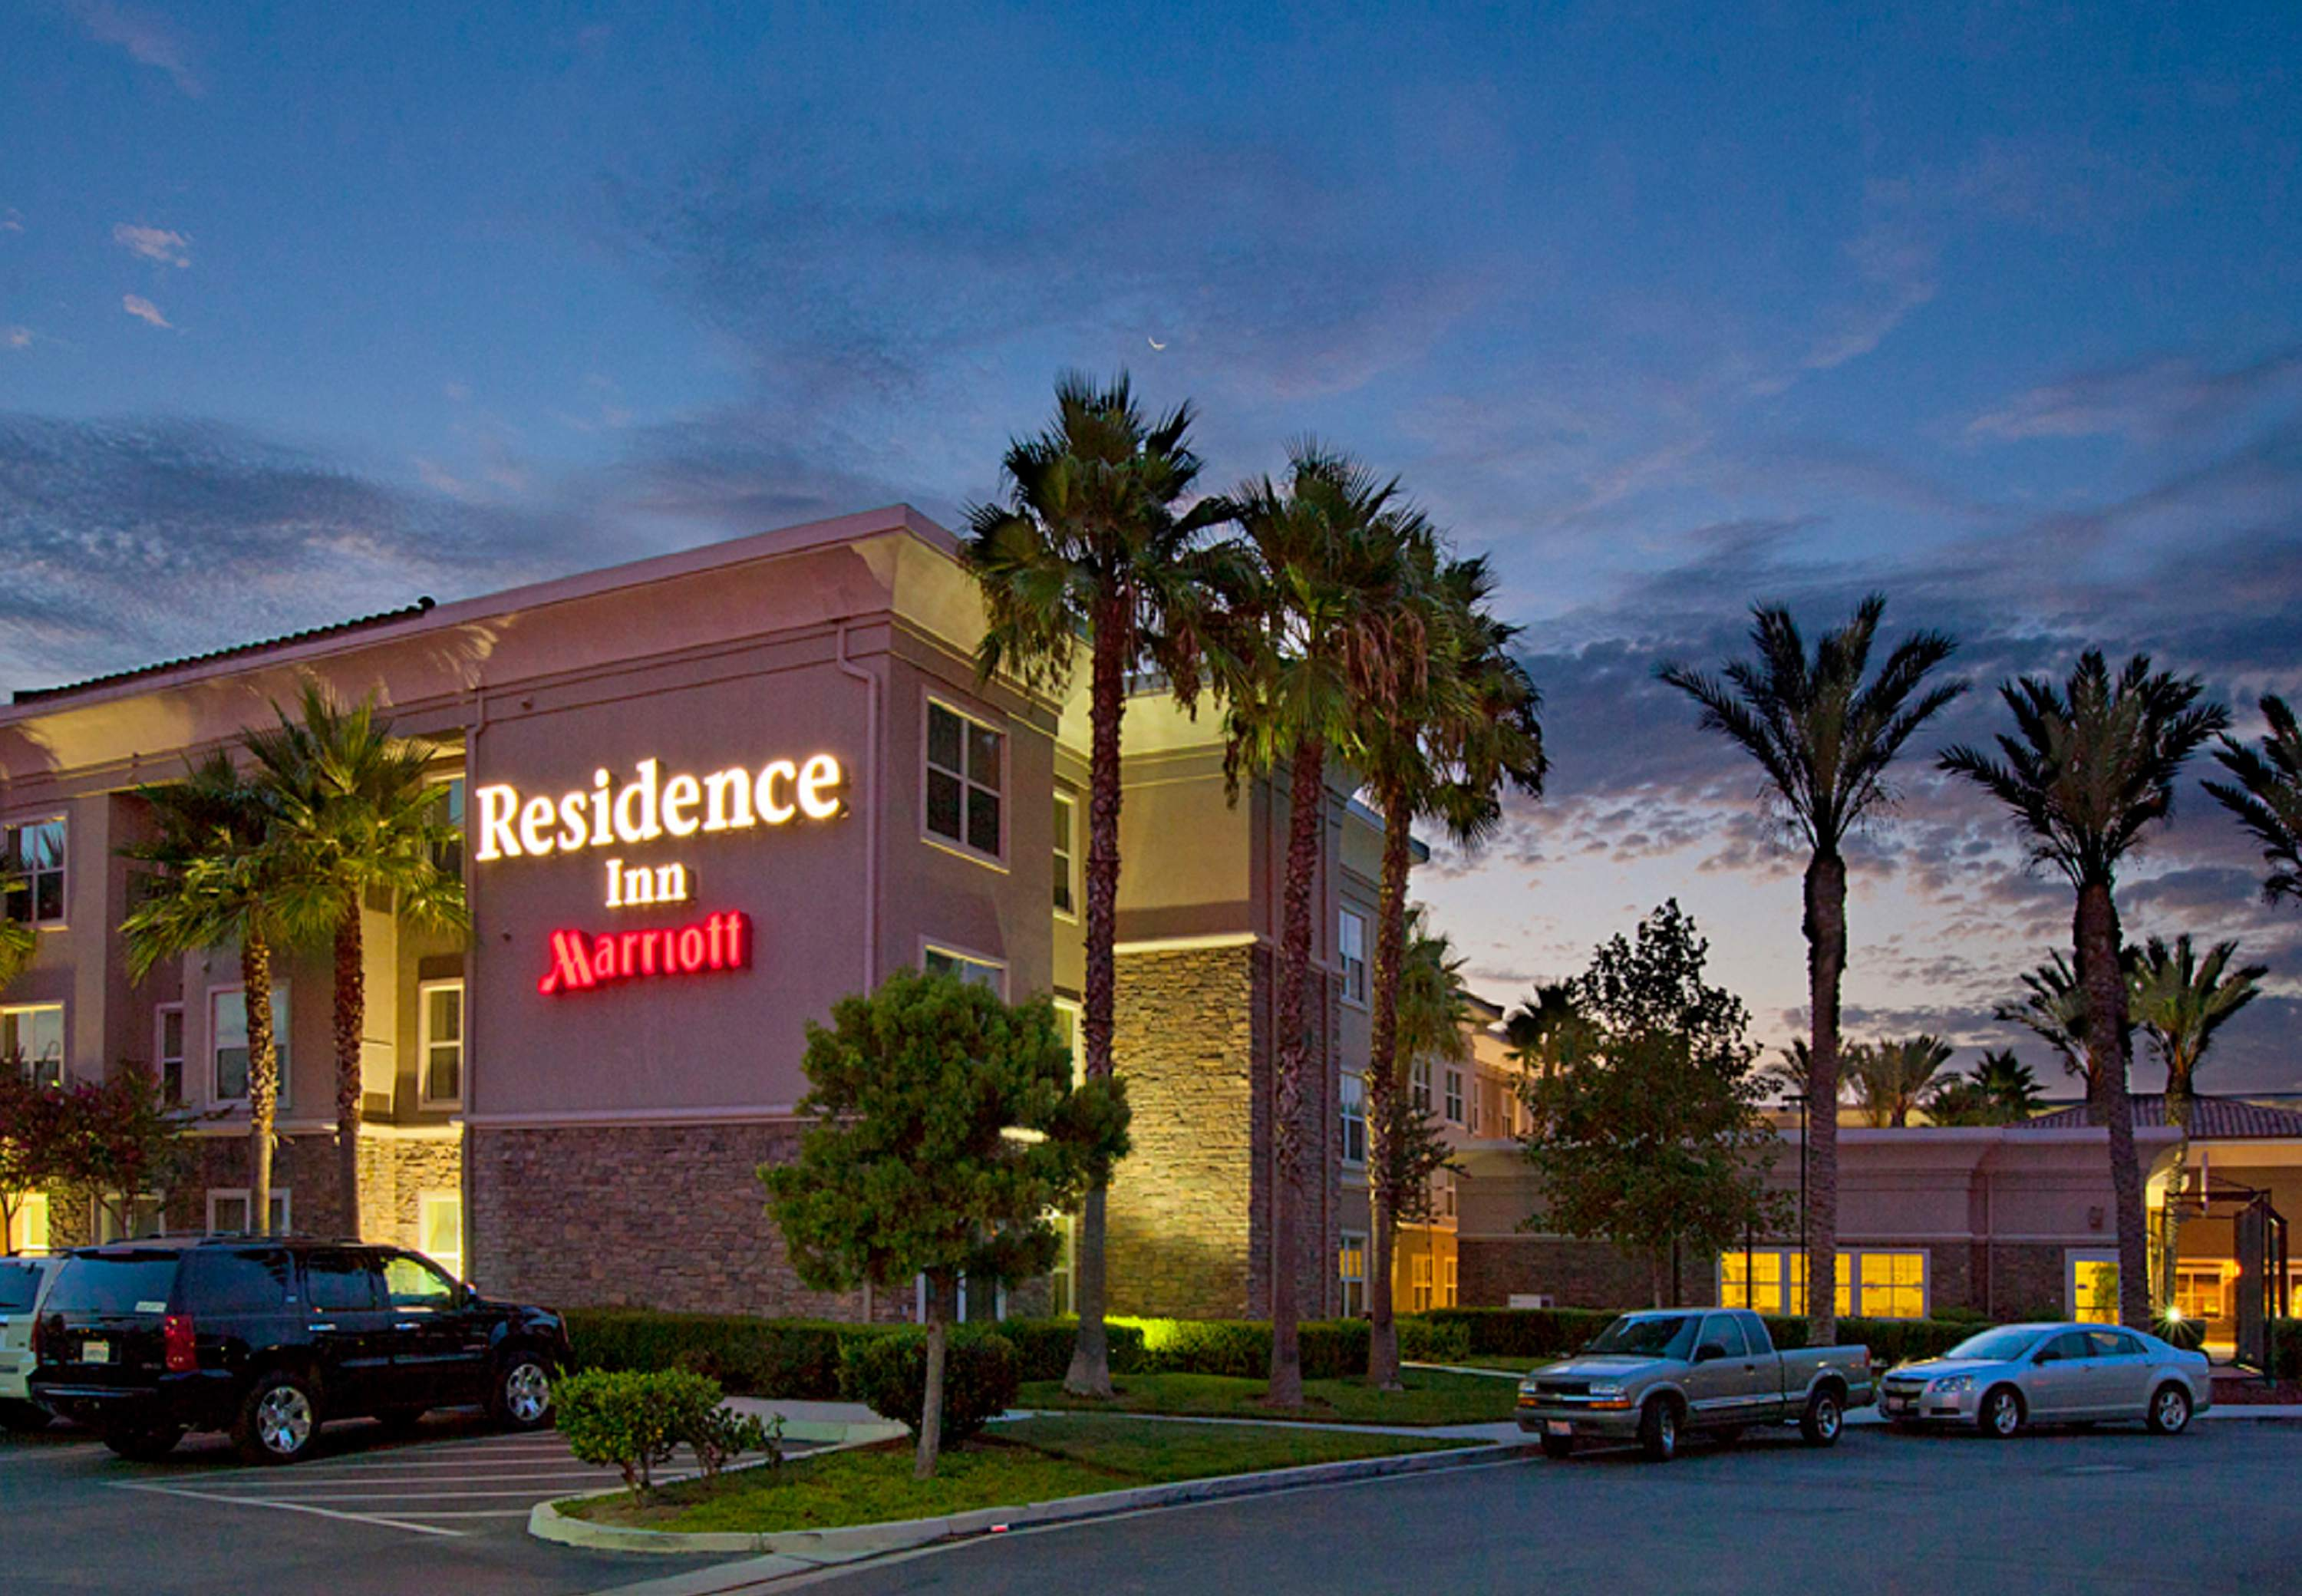 Residence Inn Columbia Coupons in Columbia, SC located at Stoneridge Dr. These printable coupons are for Residence Inn Columbia are at a great discount.